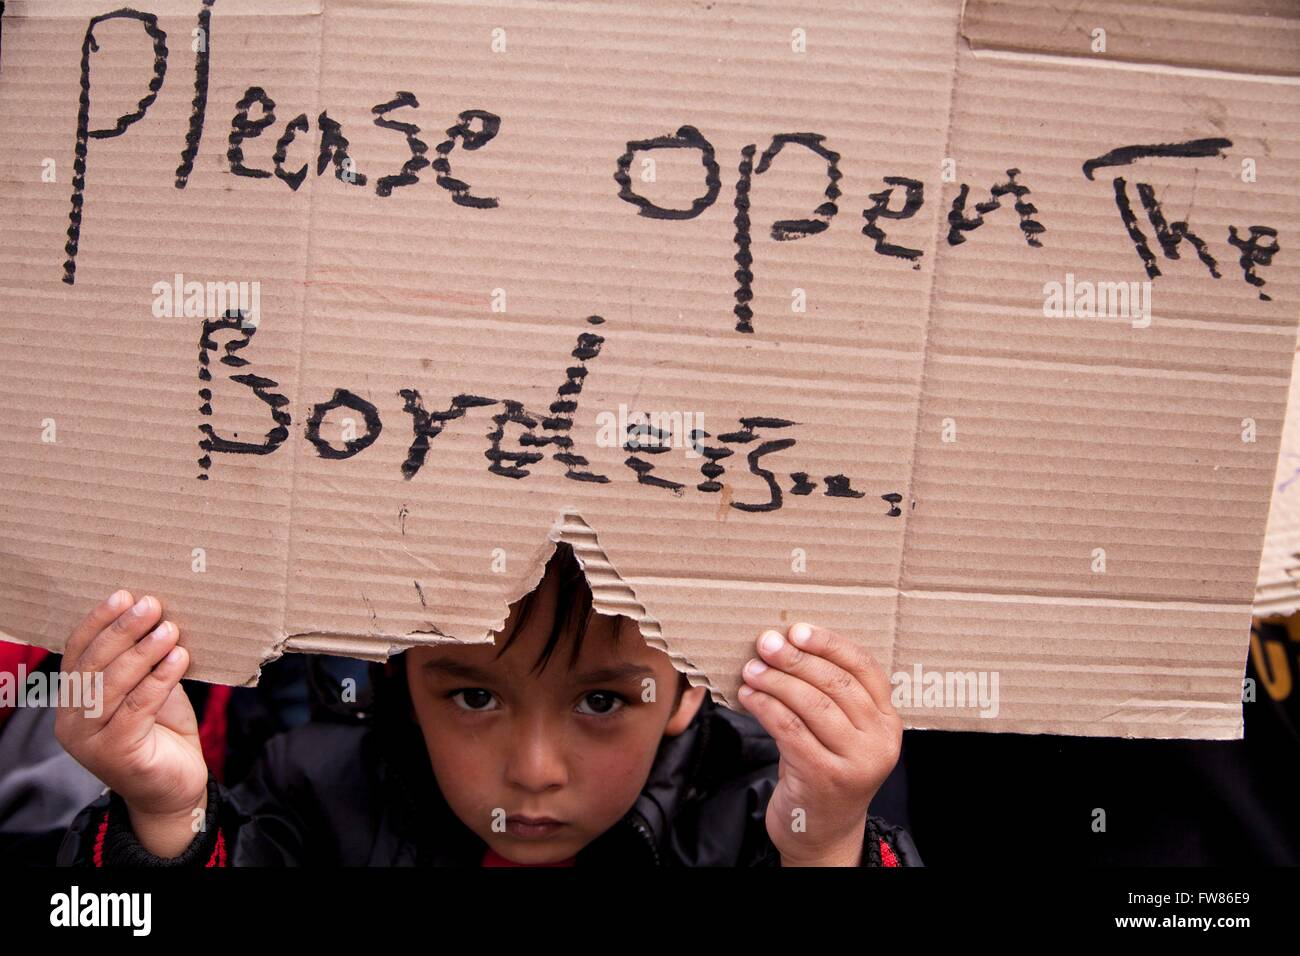 Afghan refugee child at habour of Piraeus. Refugee with sign 'Please open the border', demanding opening - Stock Image